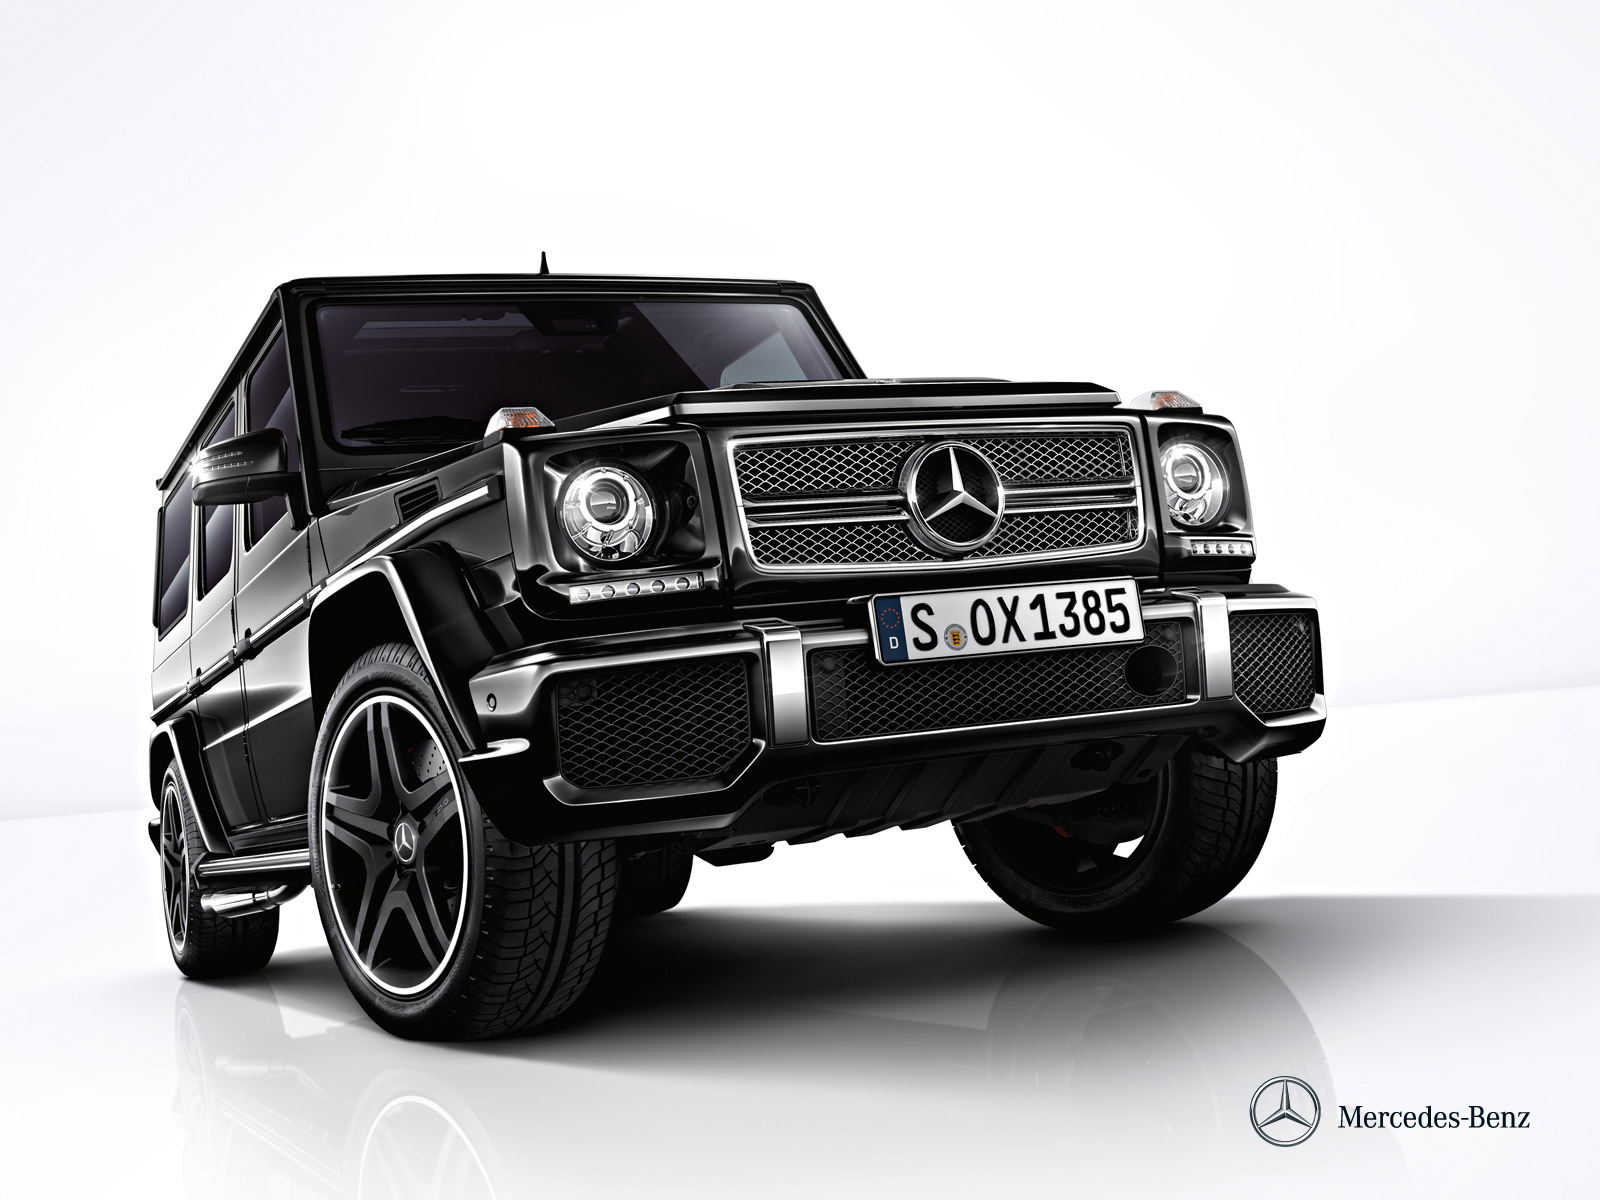 mercedes-benz-g-class-stationwagon-w463_wallpaper_01_1600x1200_03-2012